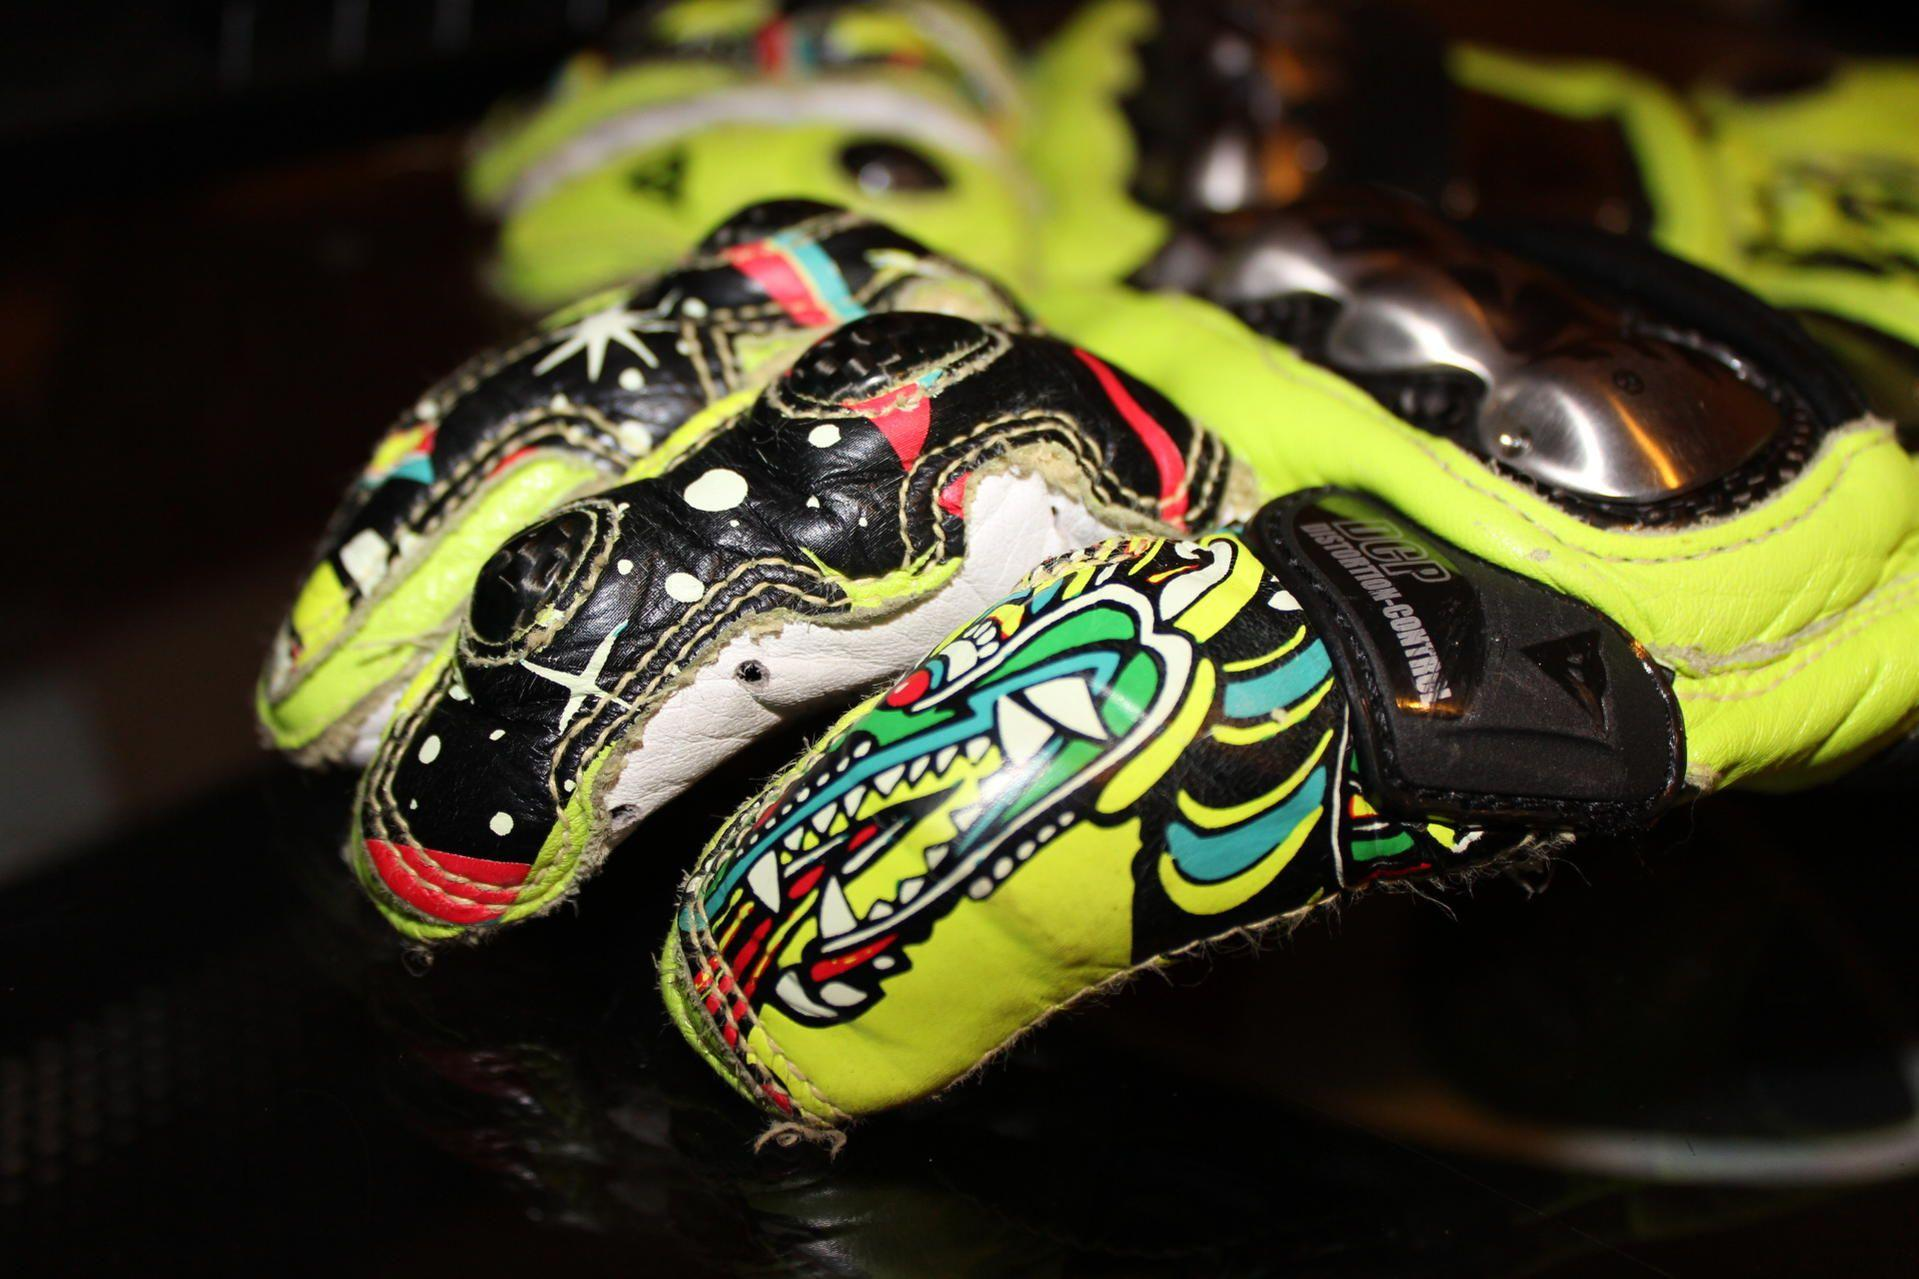 Valentino Rossi Gloves | Moto GP Wallpapers